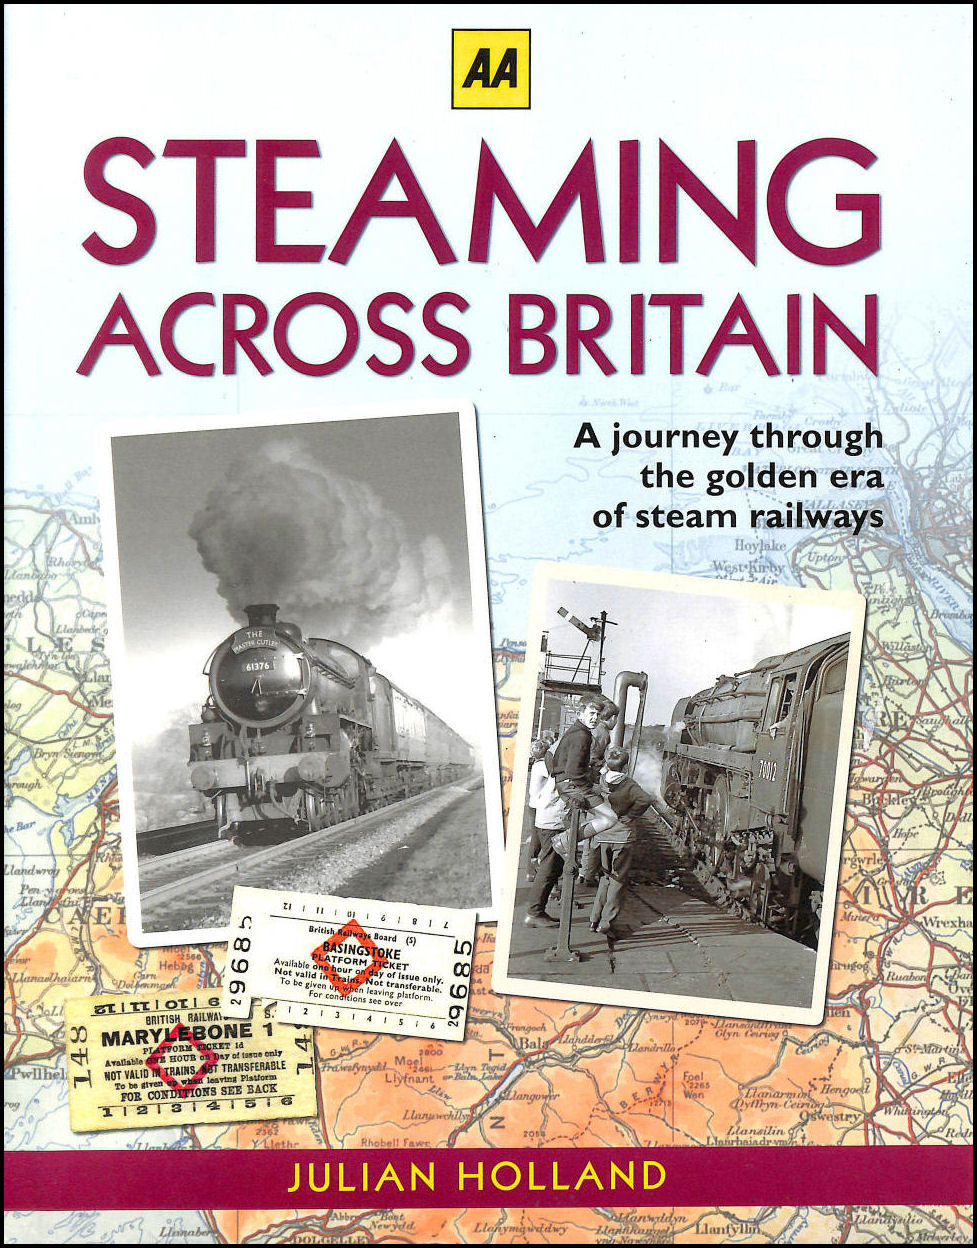 Steaming Across Britain (AA), Julian Holland